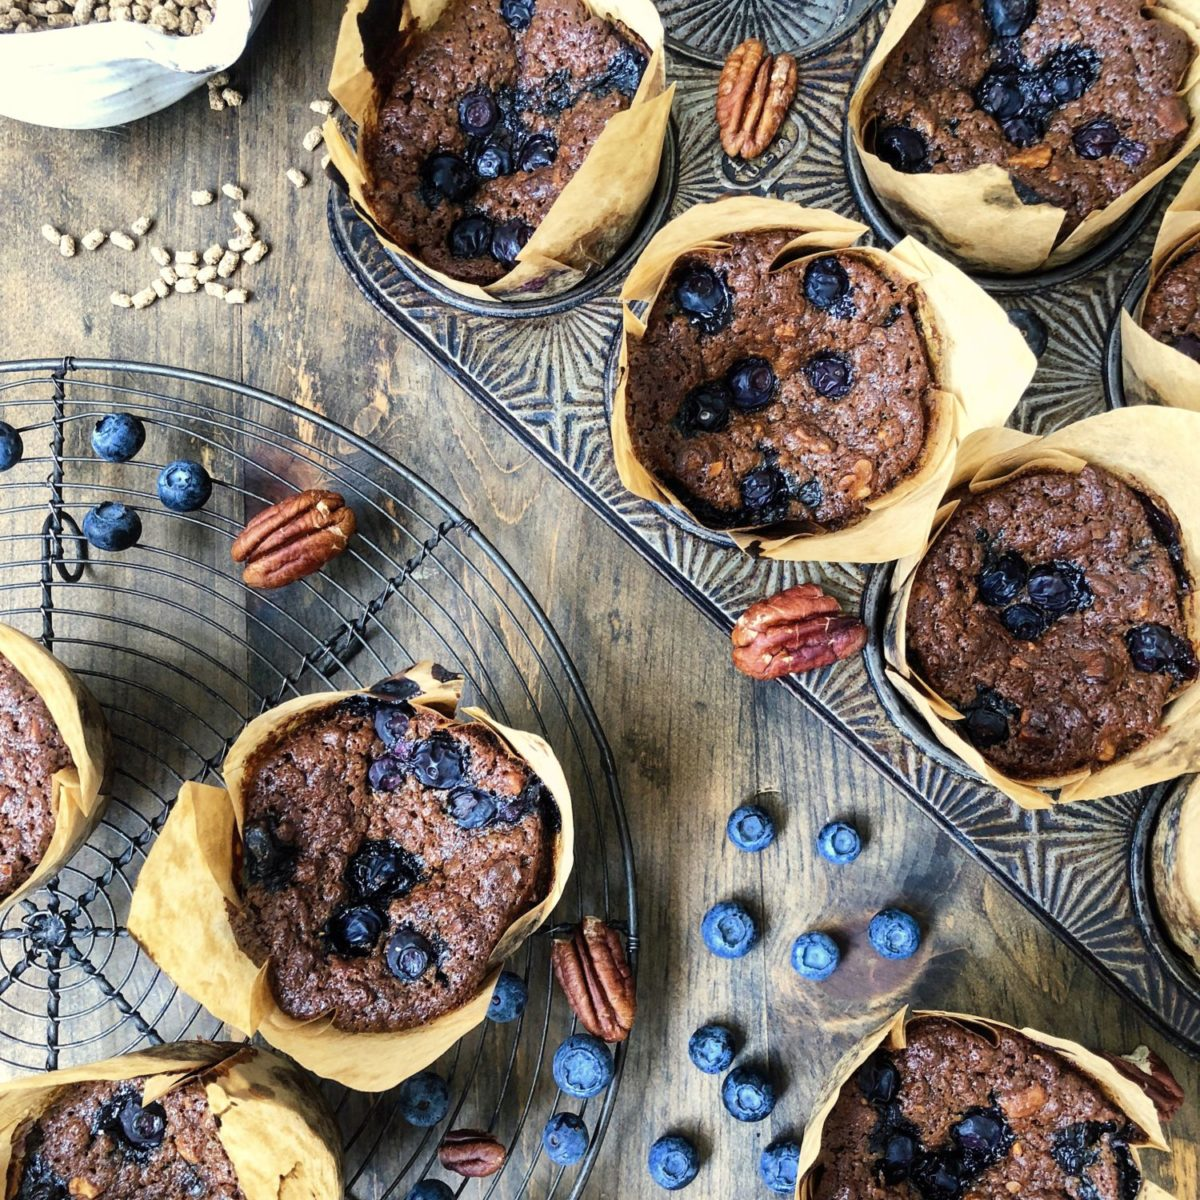 The most moist and tender blueberry bran muffin